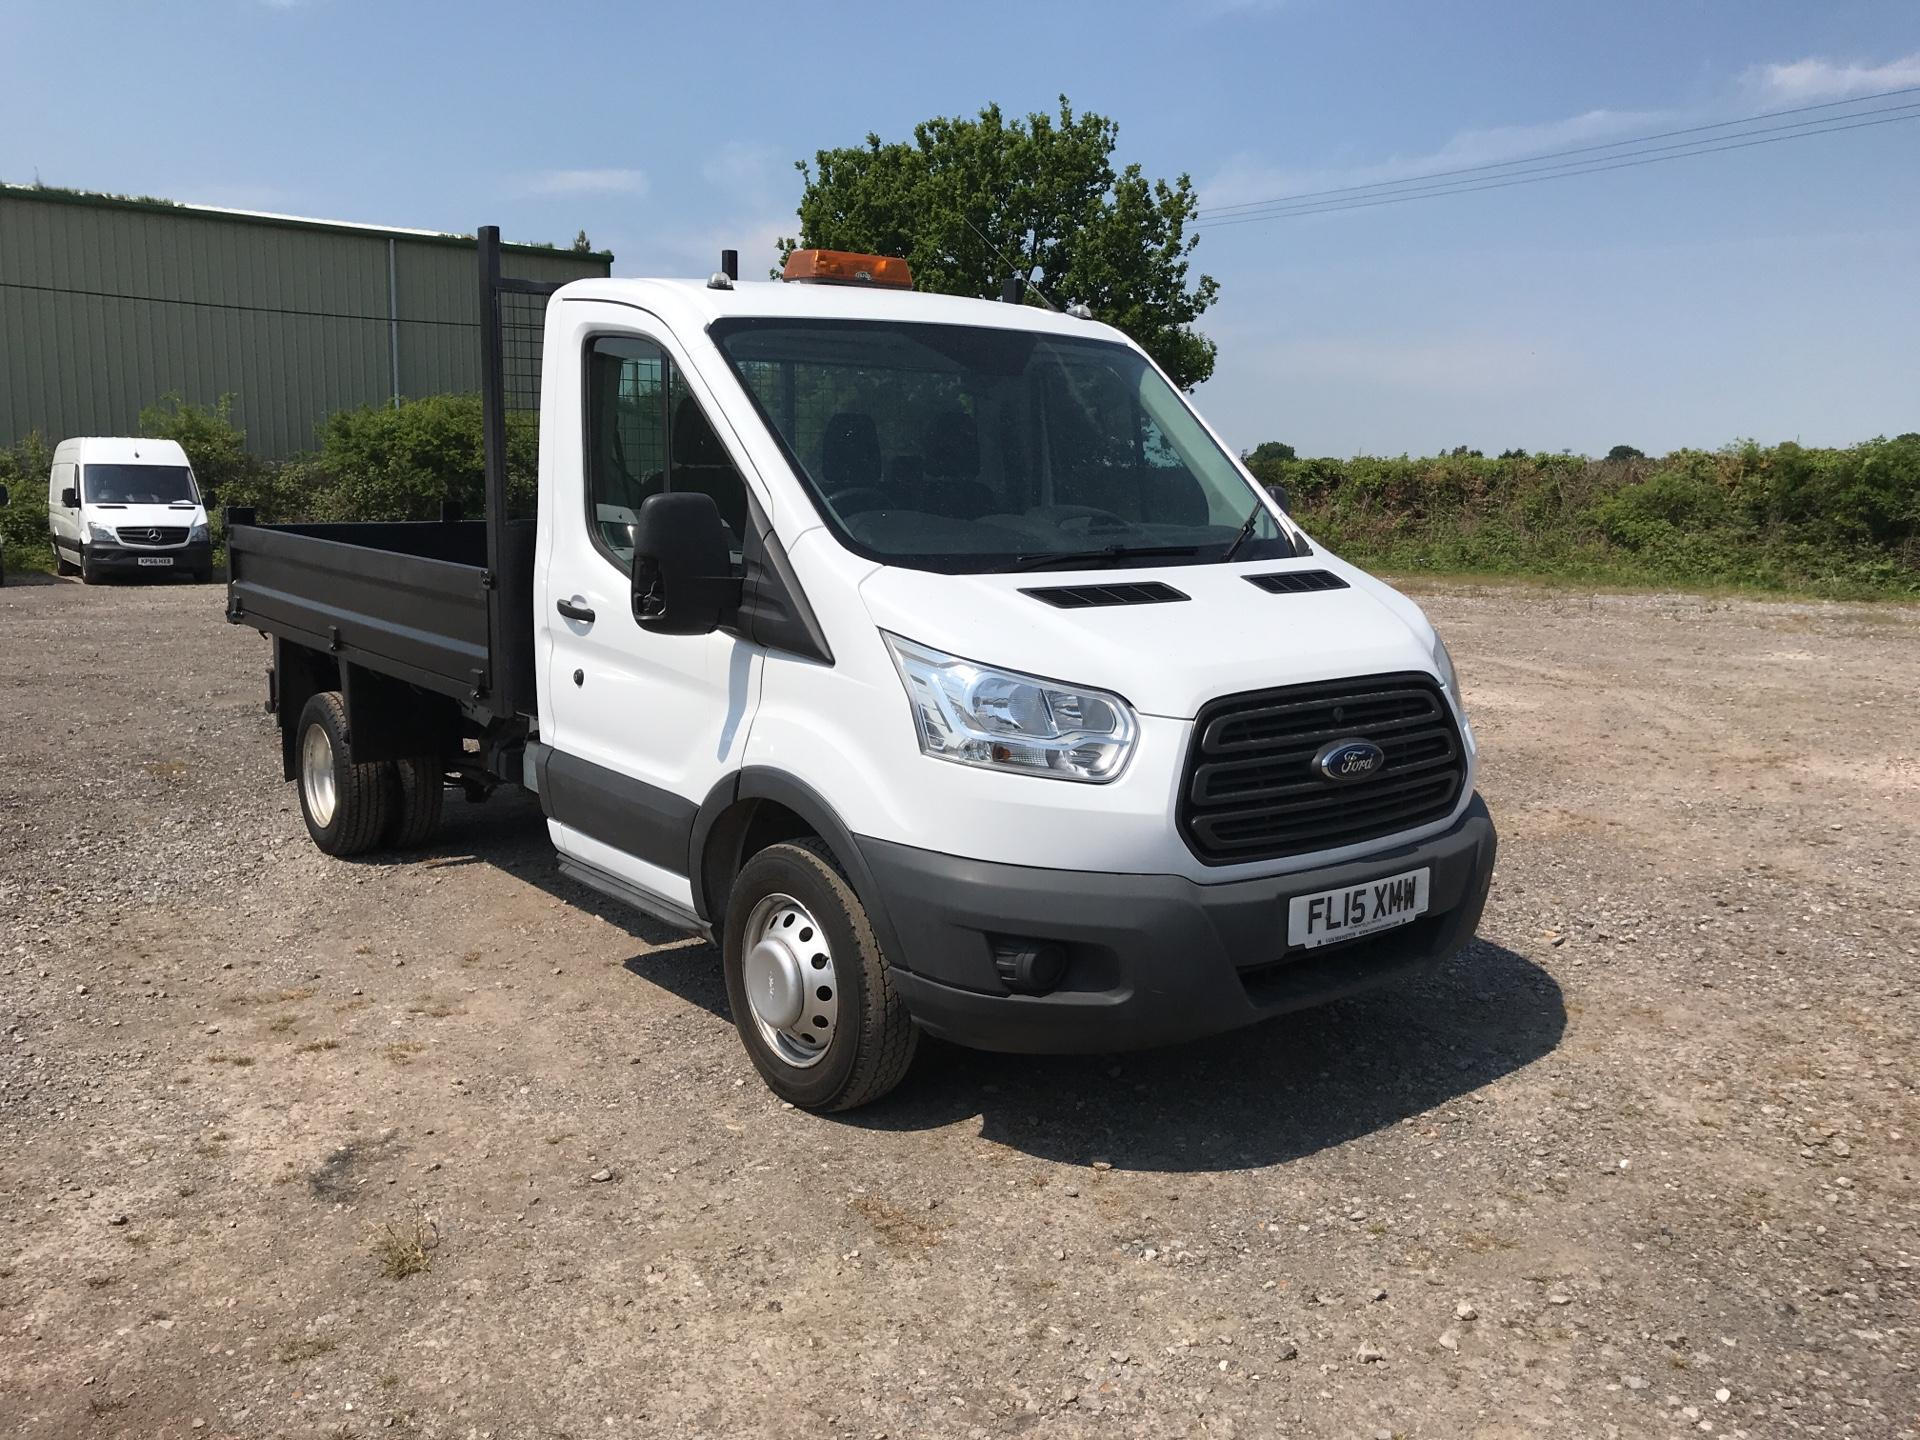 2015 Ford Transit 2.2 Tdci 125Ps Single Cab One Stop Tipper (FL15XMW)